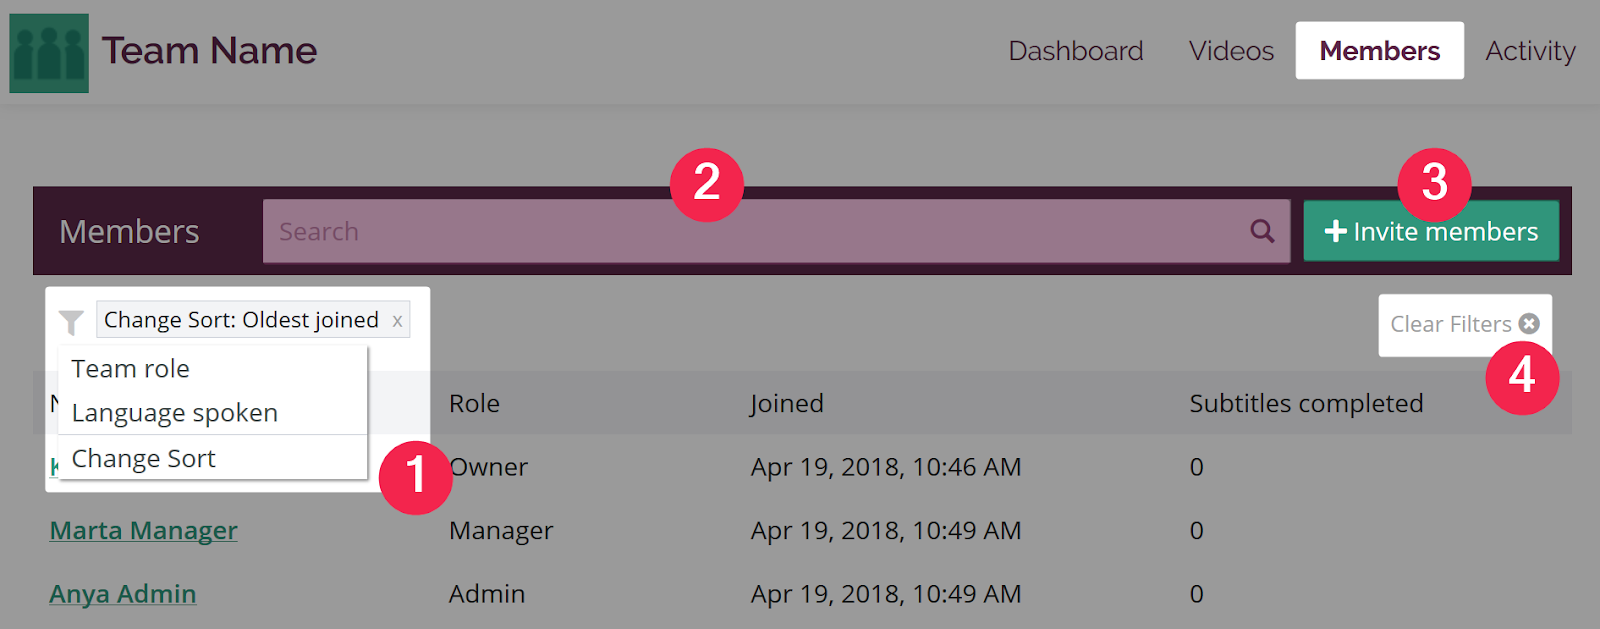 Filter and sort options, search bar, invite members button, and clear filters button highlighted and numbered on the members page for a contributor on an Amara team